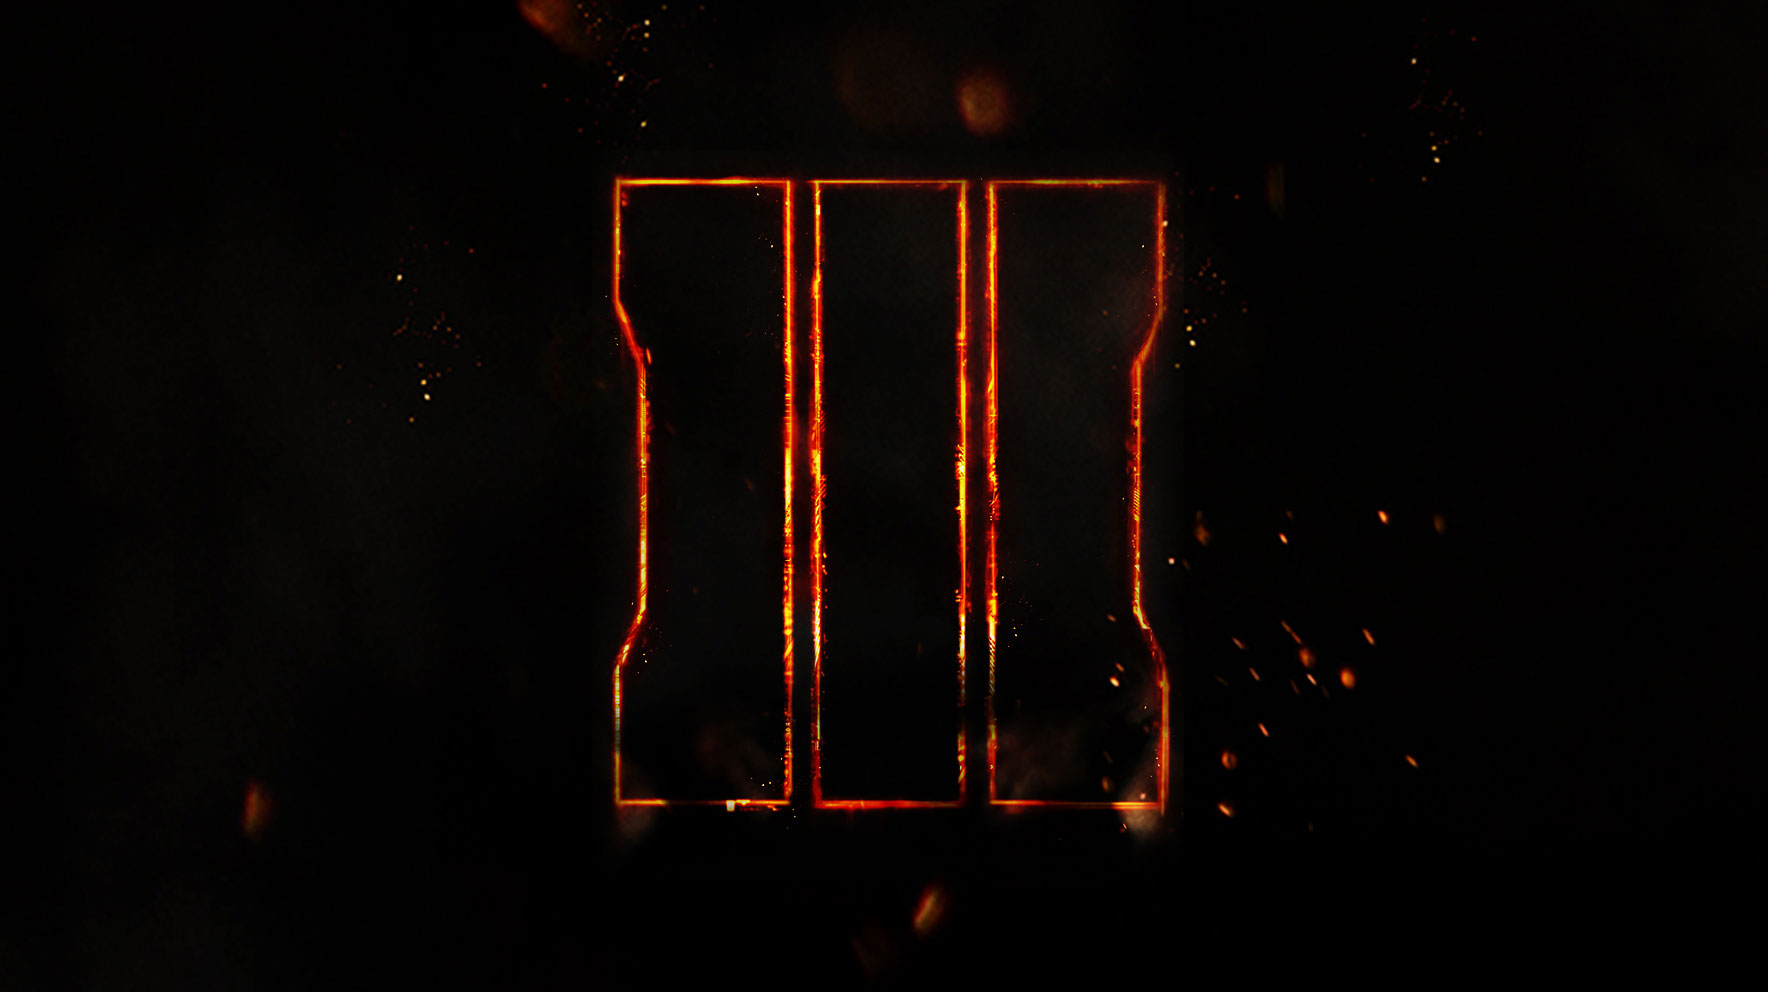 when did black ops 3 come out